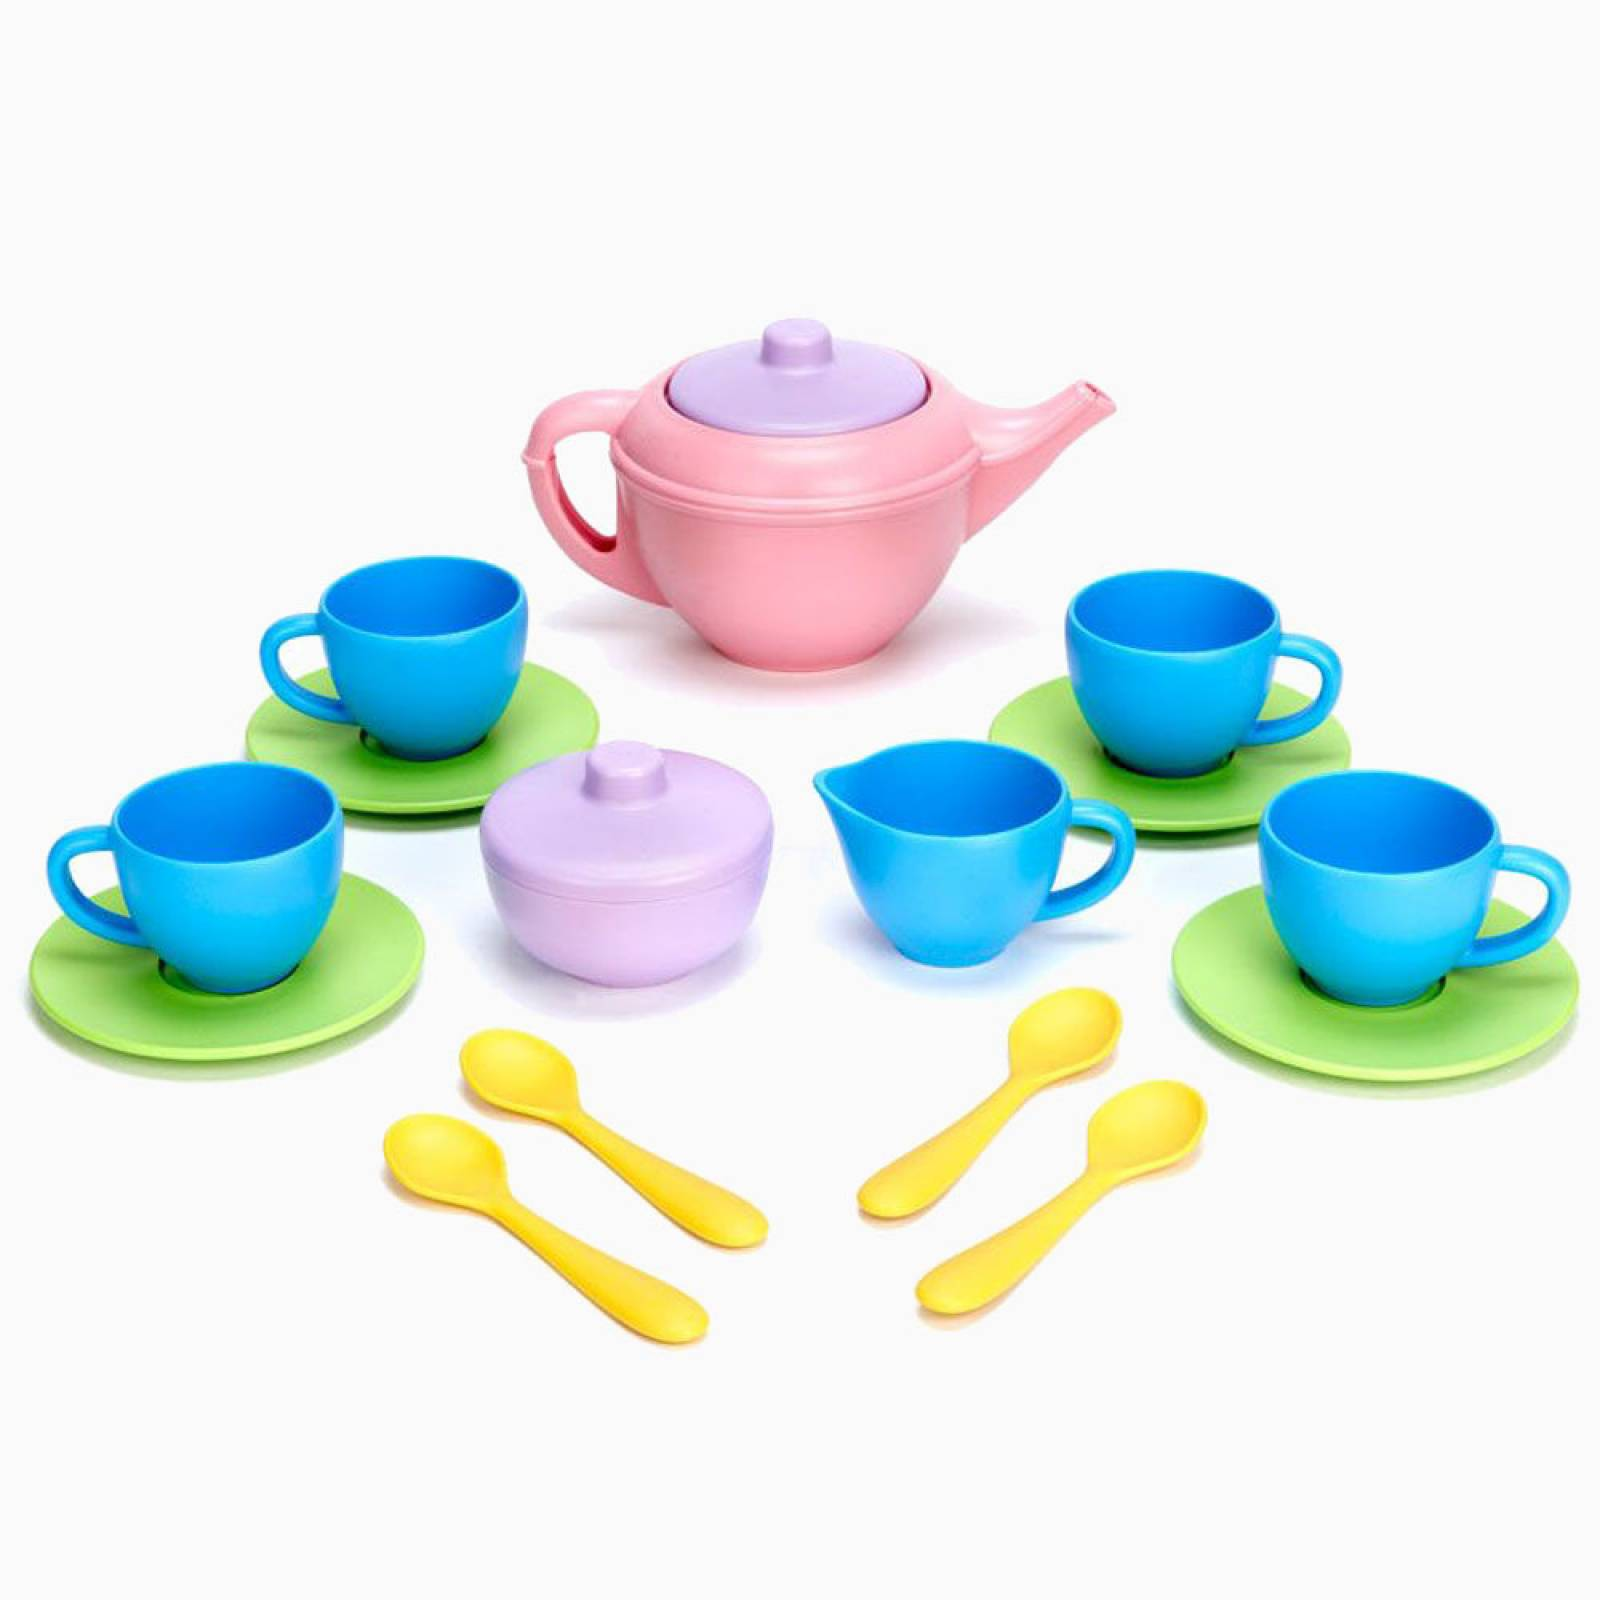 Tea Set With Pink Teapot By Green Toys 17 Pieces 2+ thumbnails